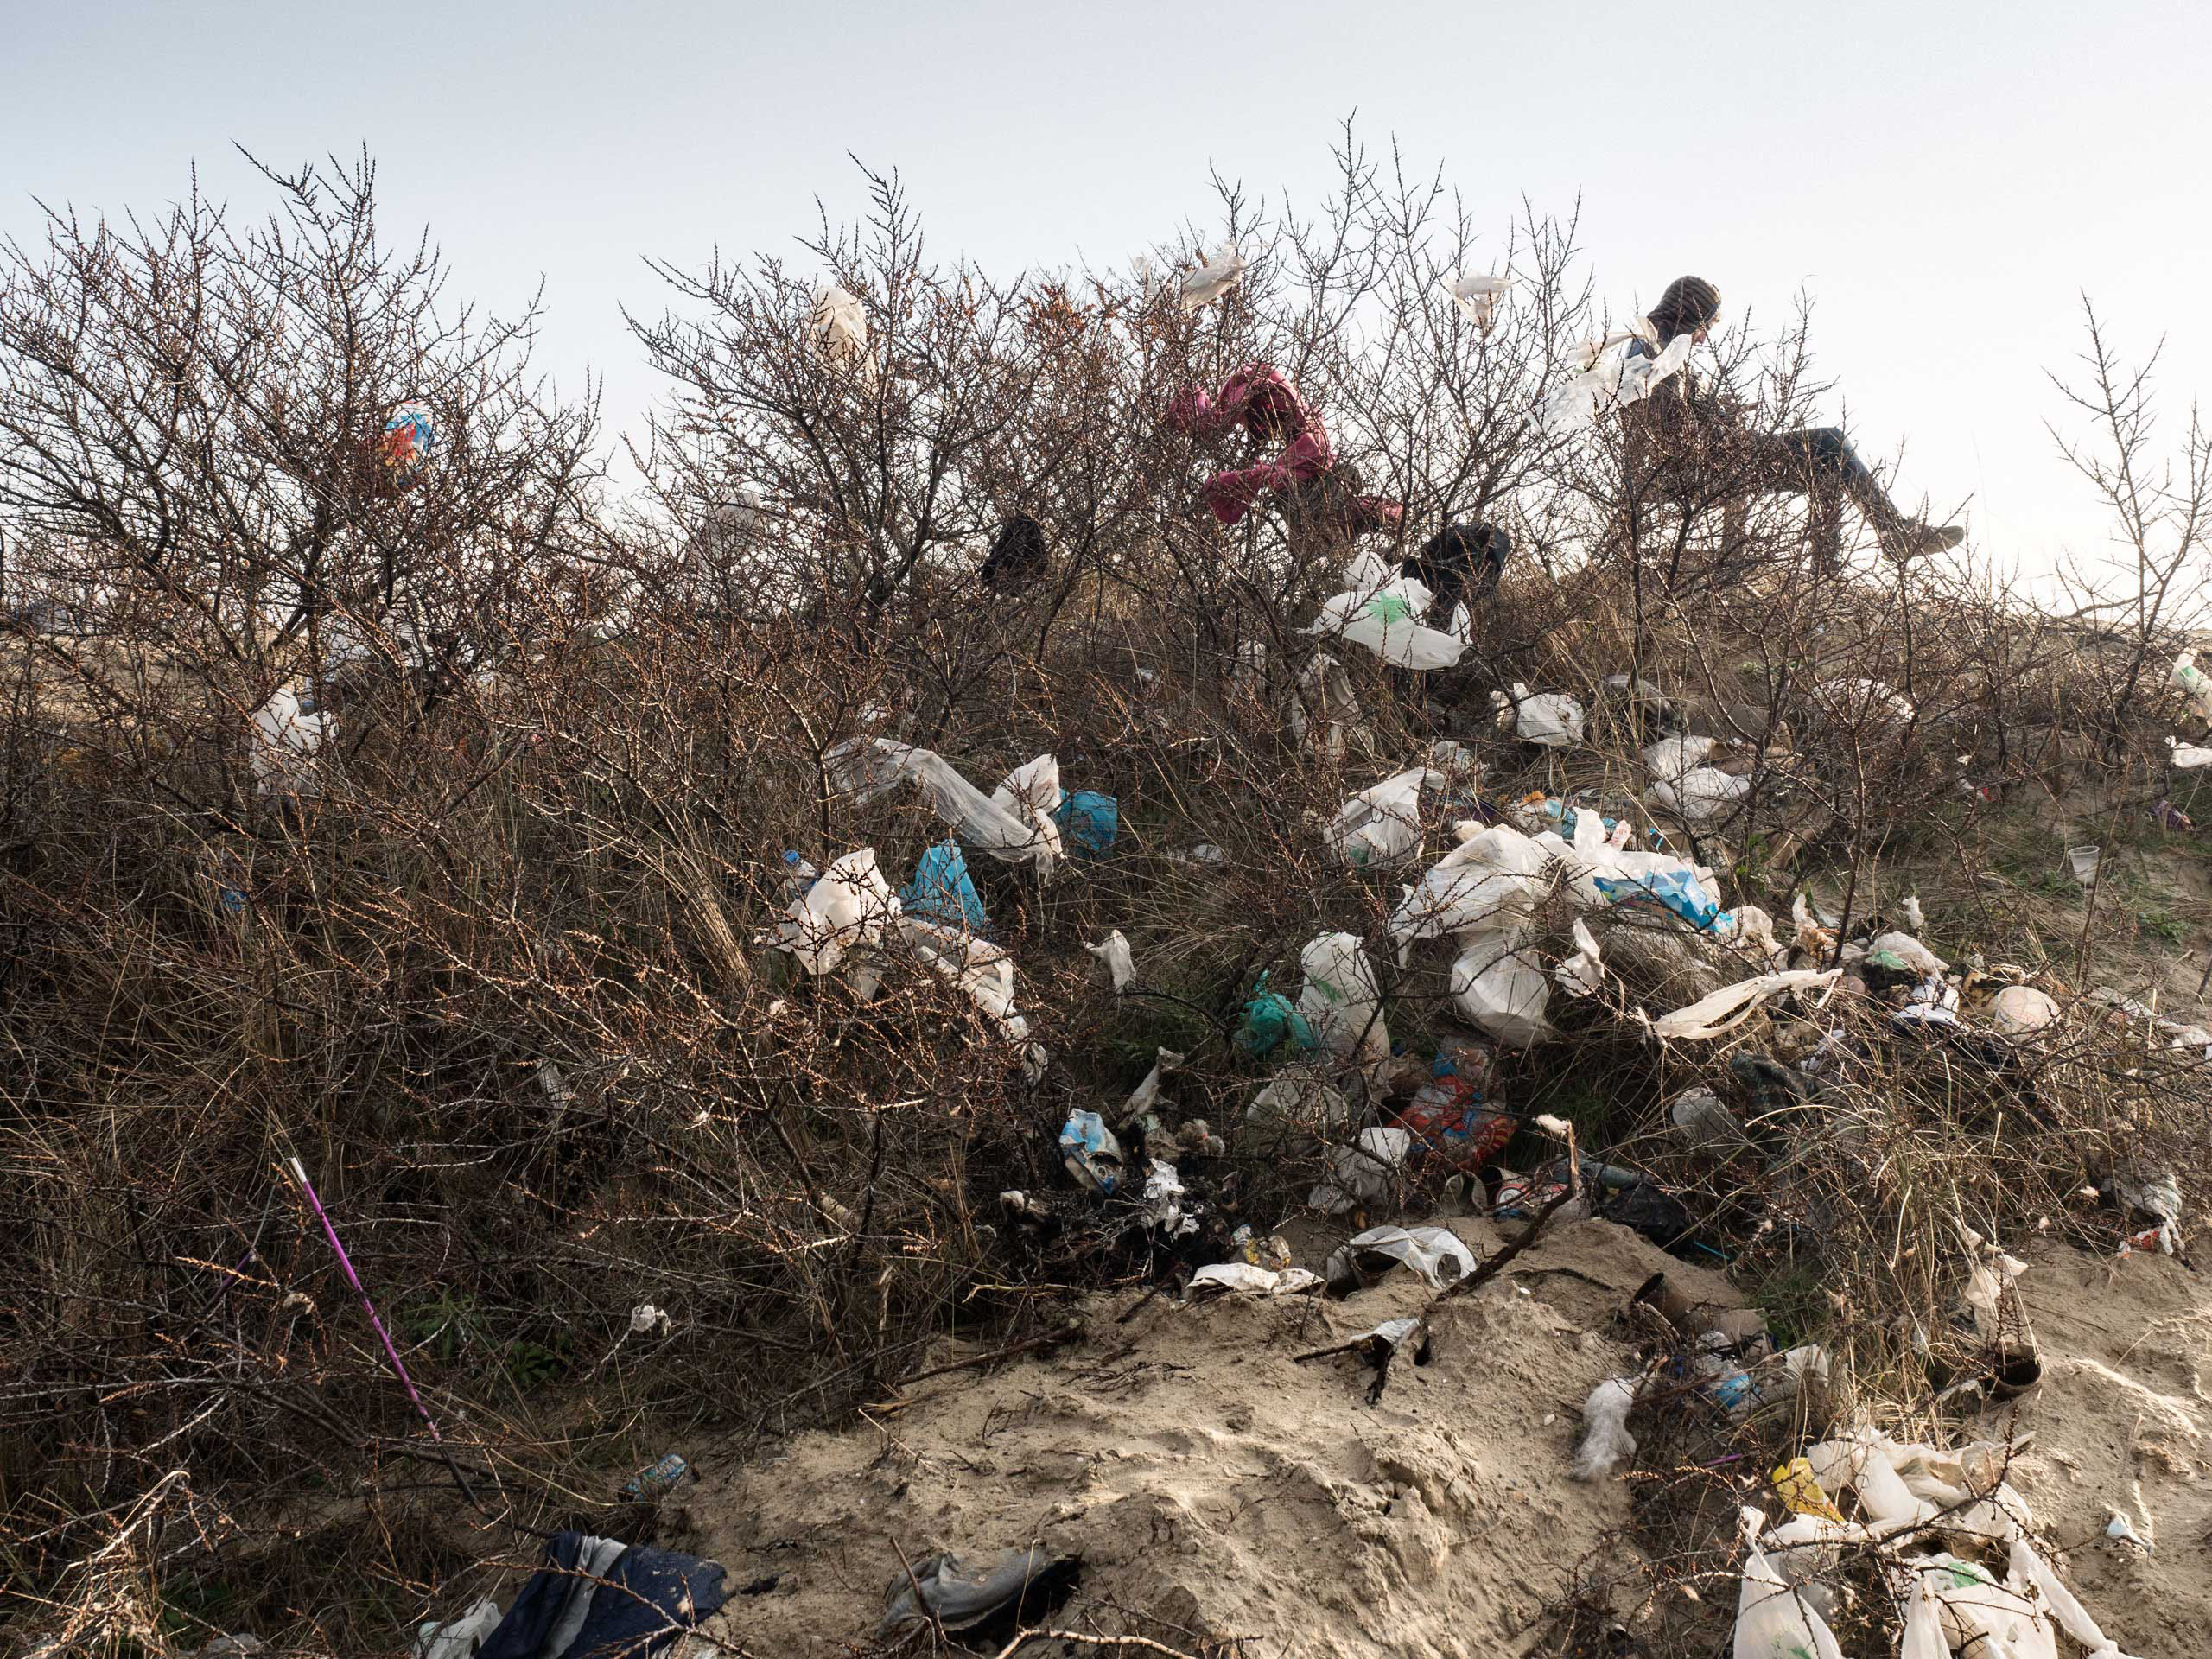 Trash collects on trees in the  jungle  of Calais, France, Jan. 20, 2016.